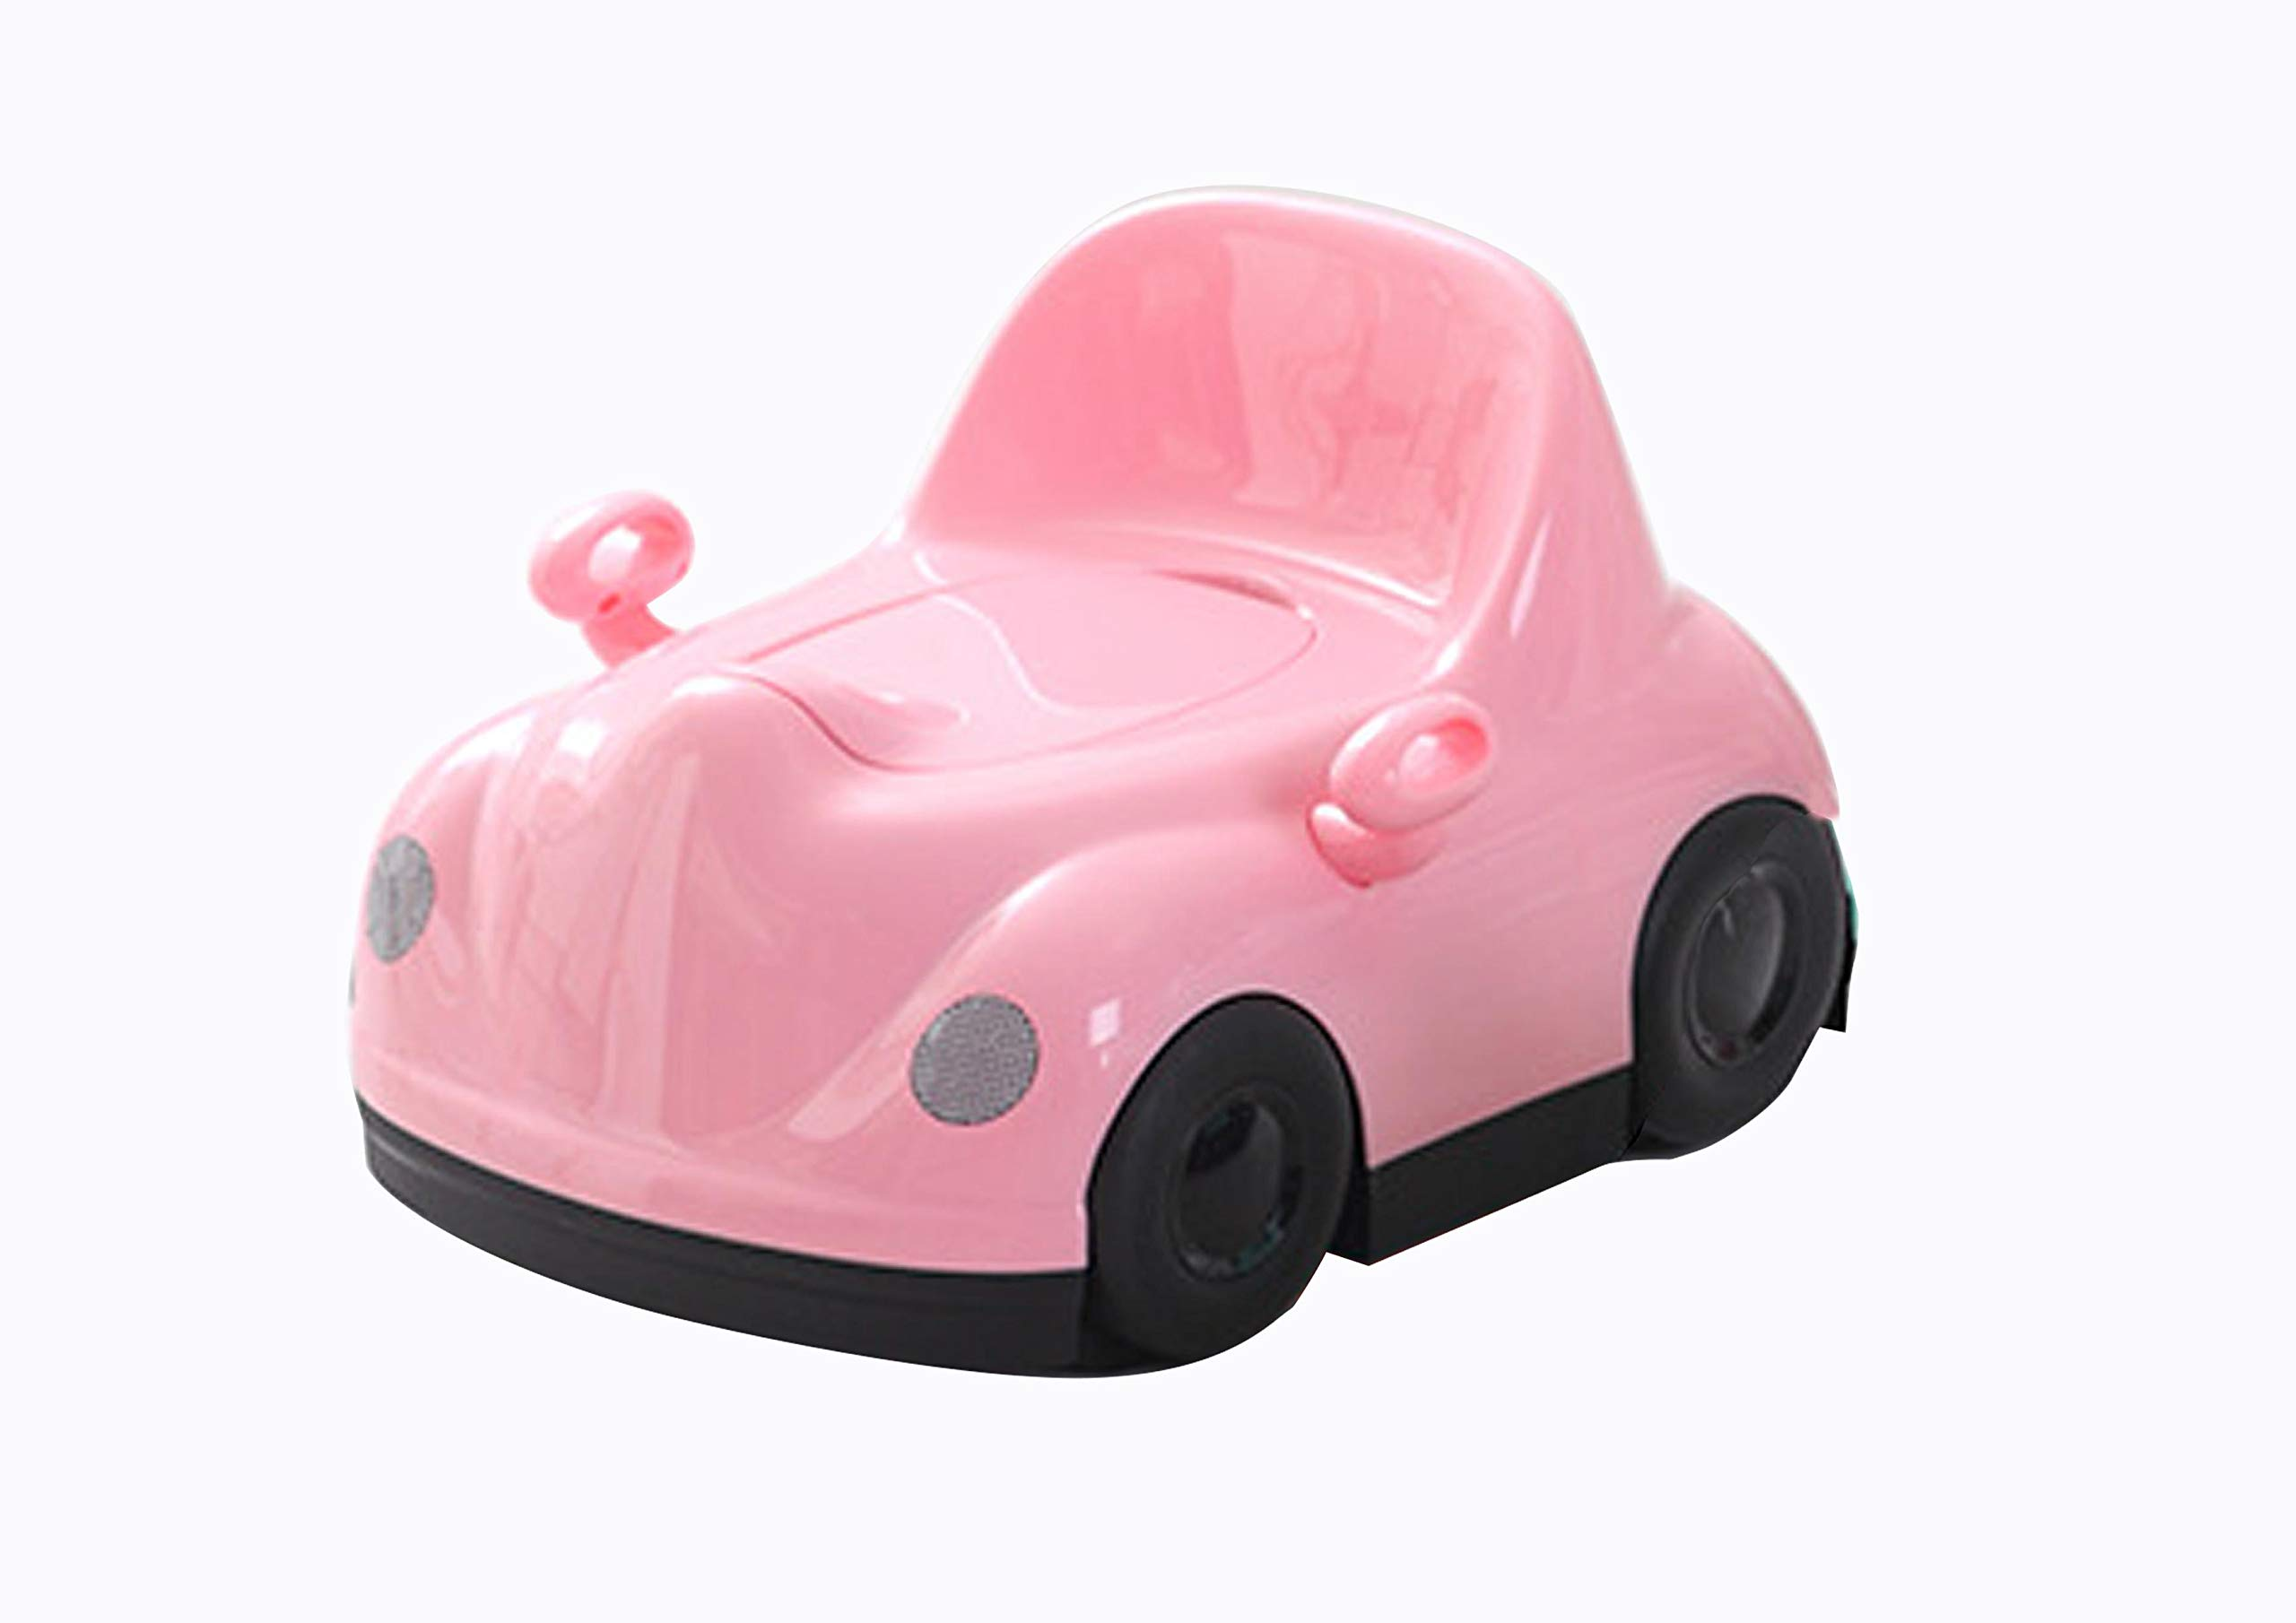 Baby Potty (Pink) 3-in-1 Potty - Cute car Training Toilet Chair for Toddler Boys and Girls